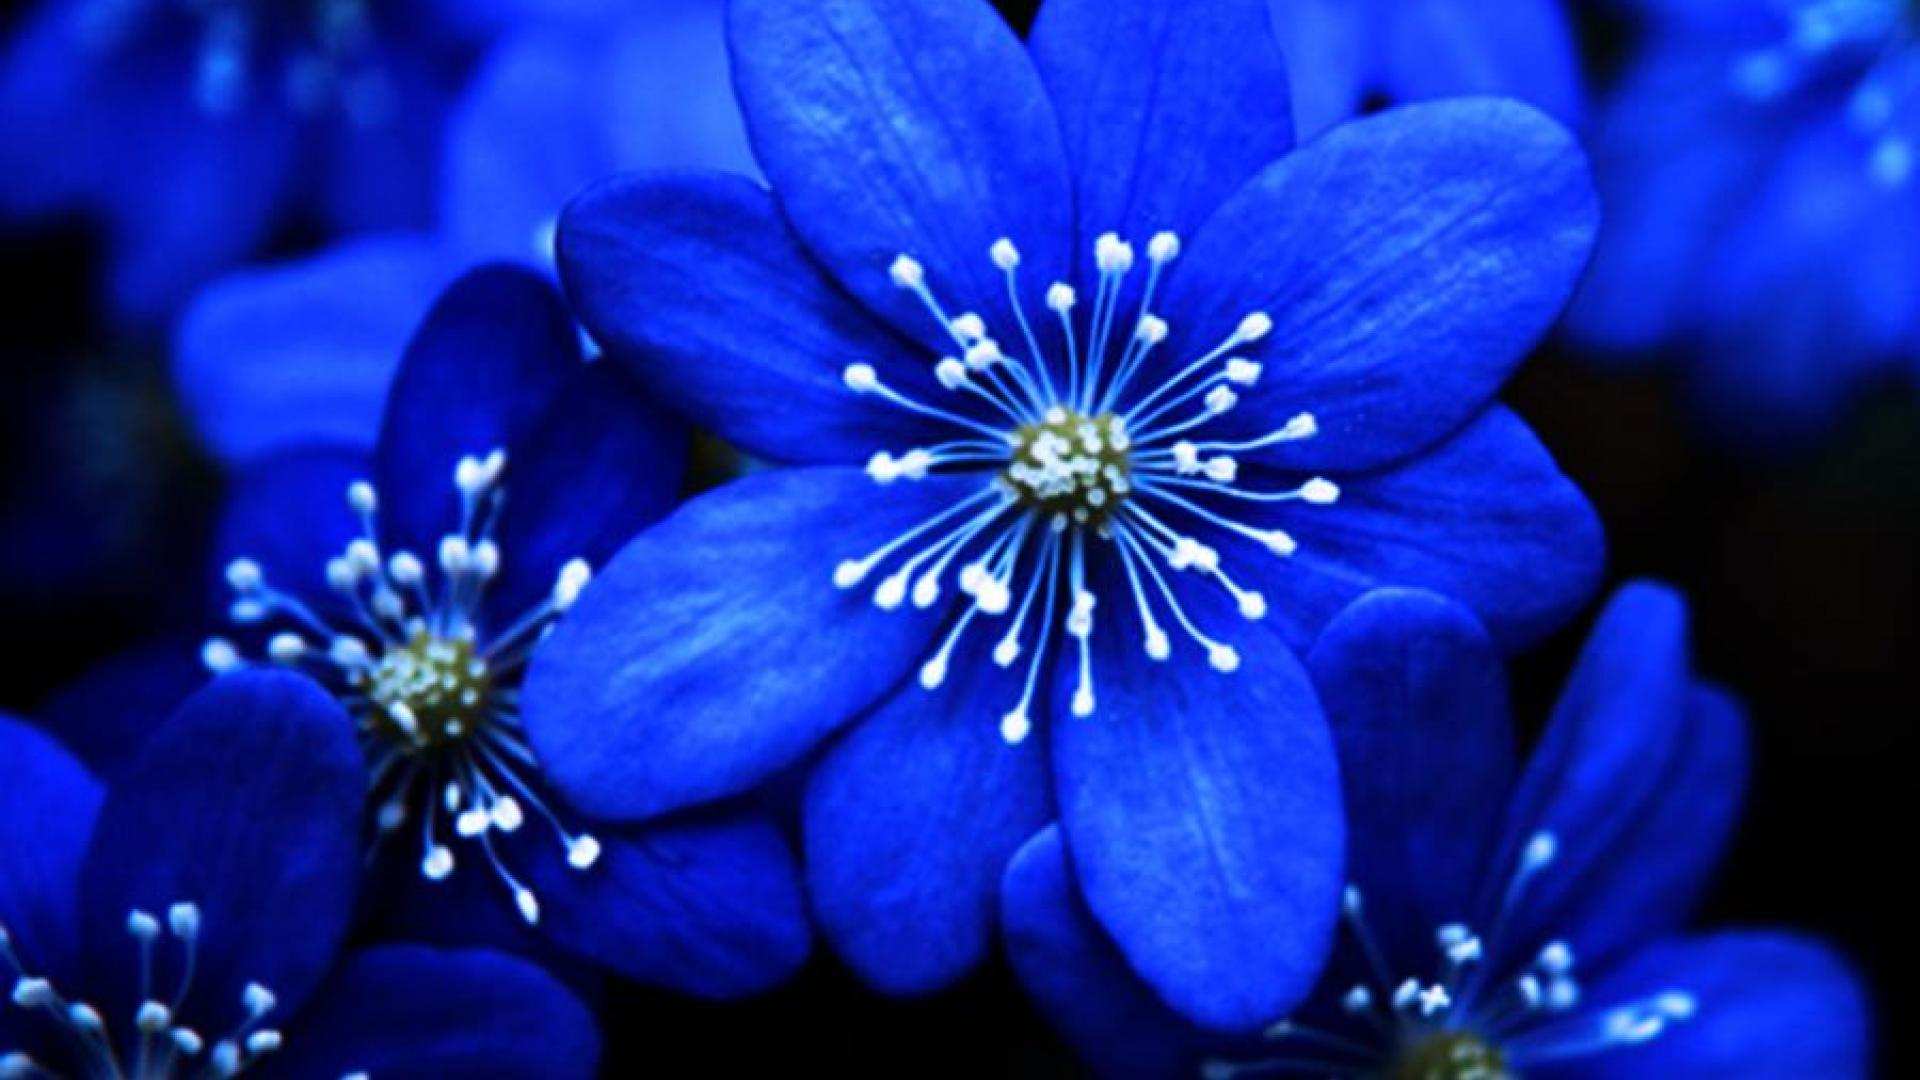 Blue Flowers as Backgrounds